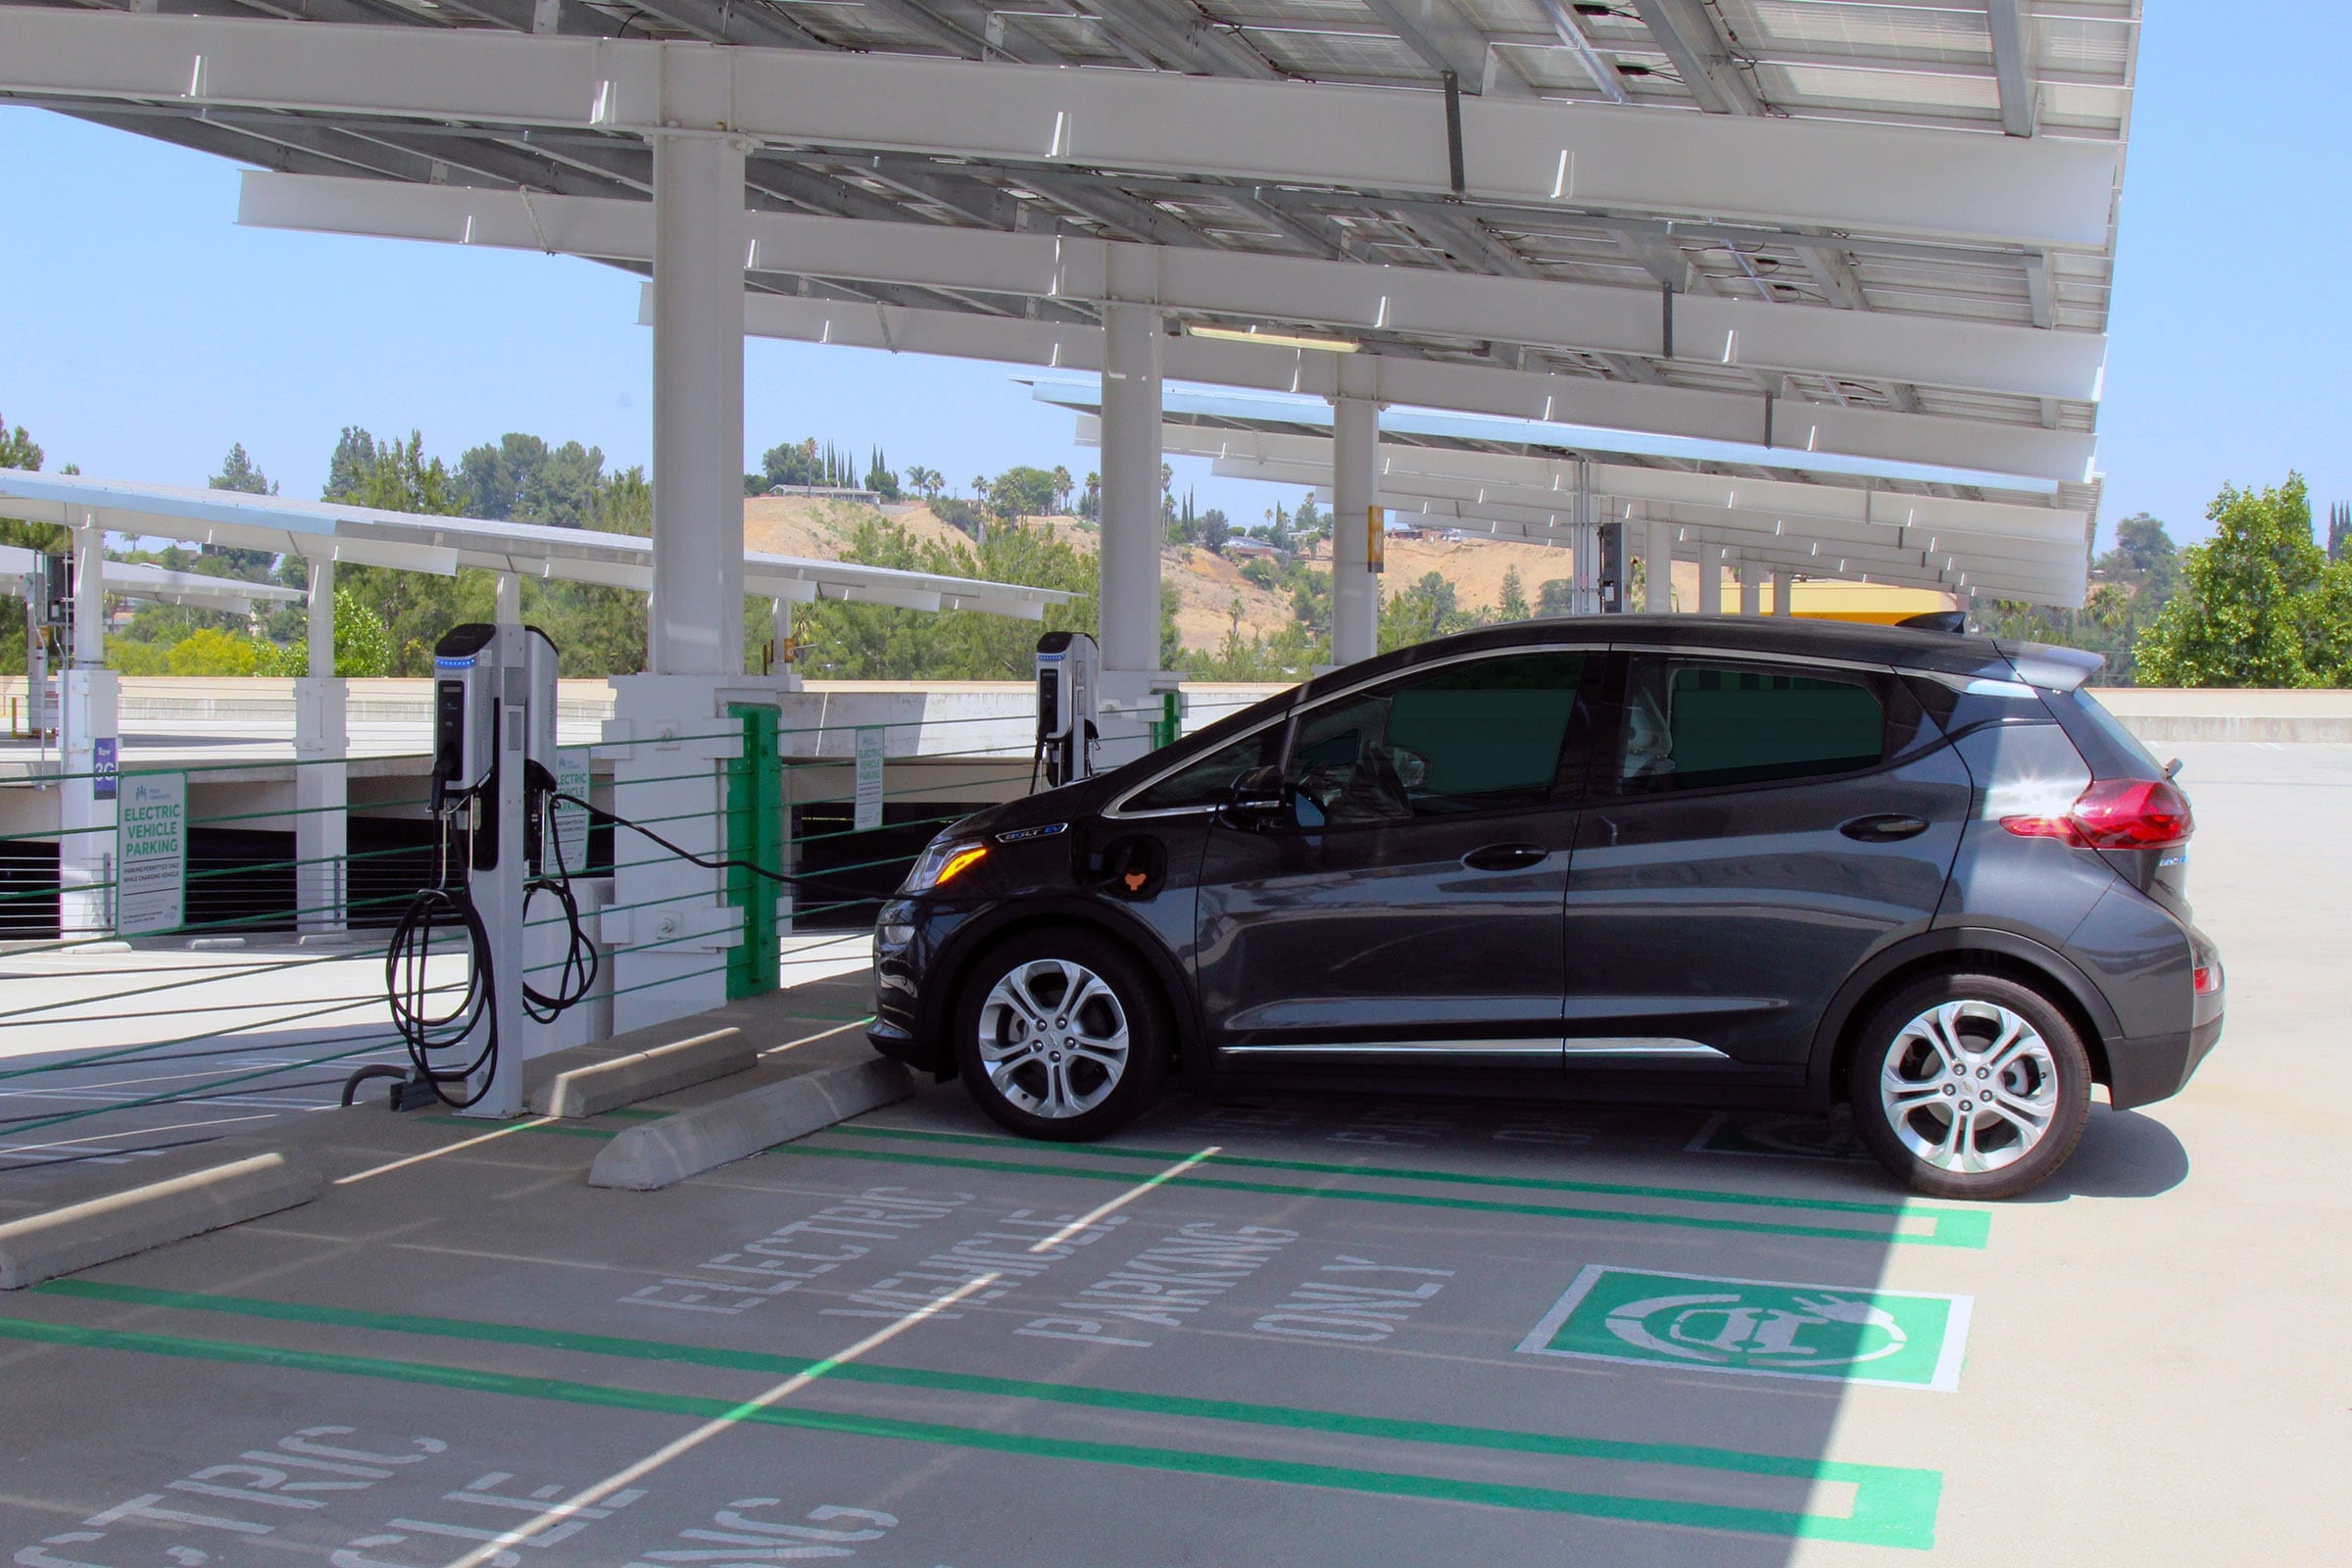 Chevy Bolt EV Charging at a Level 2 charger